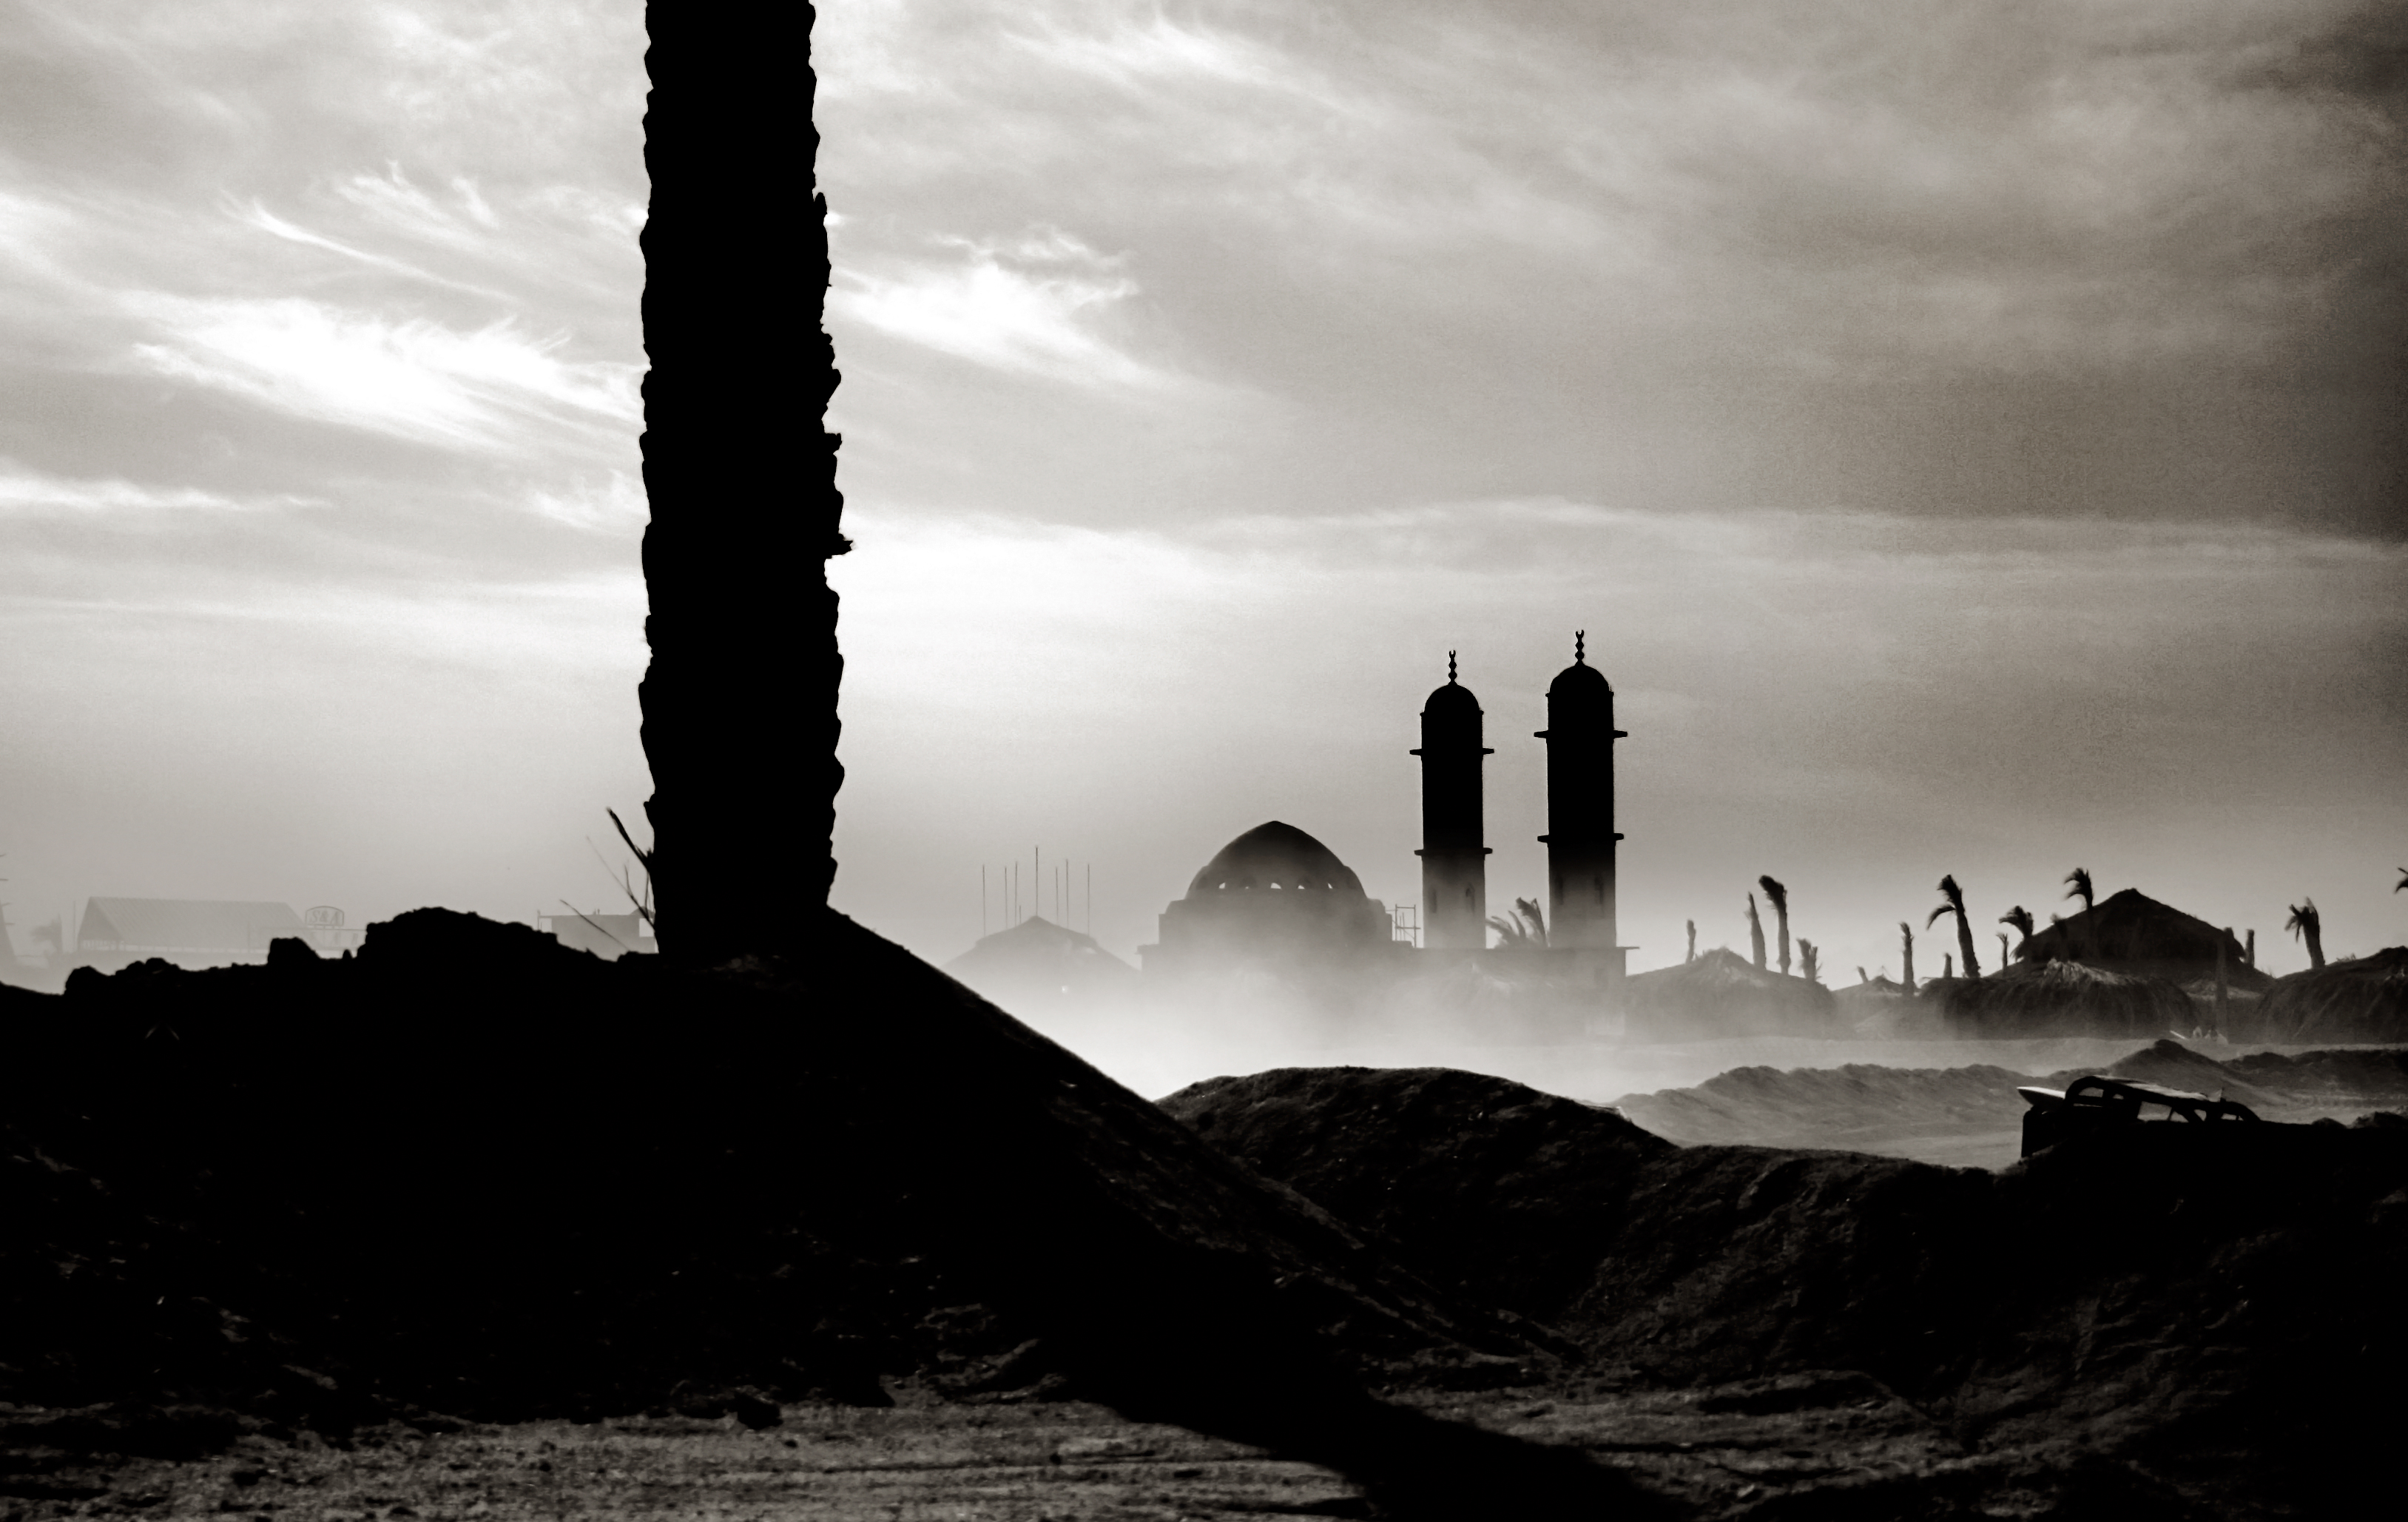 Mosque landscape in egypt photo